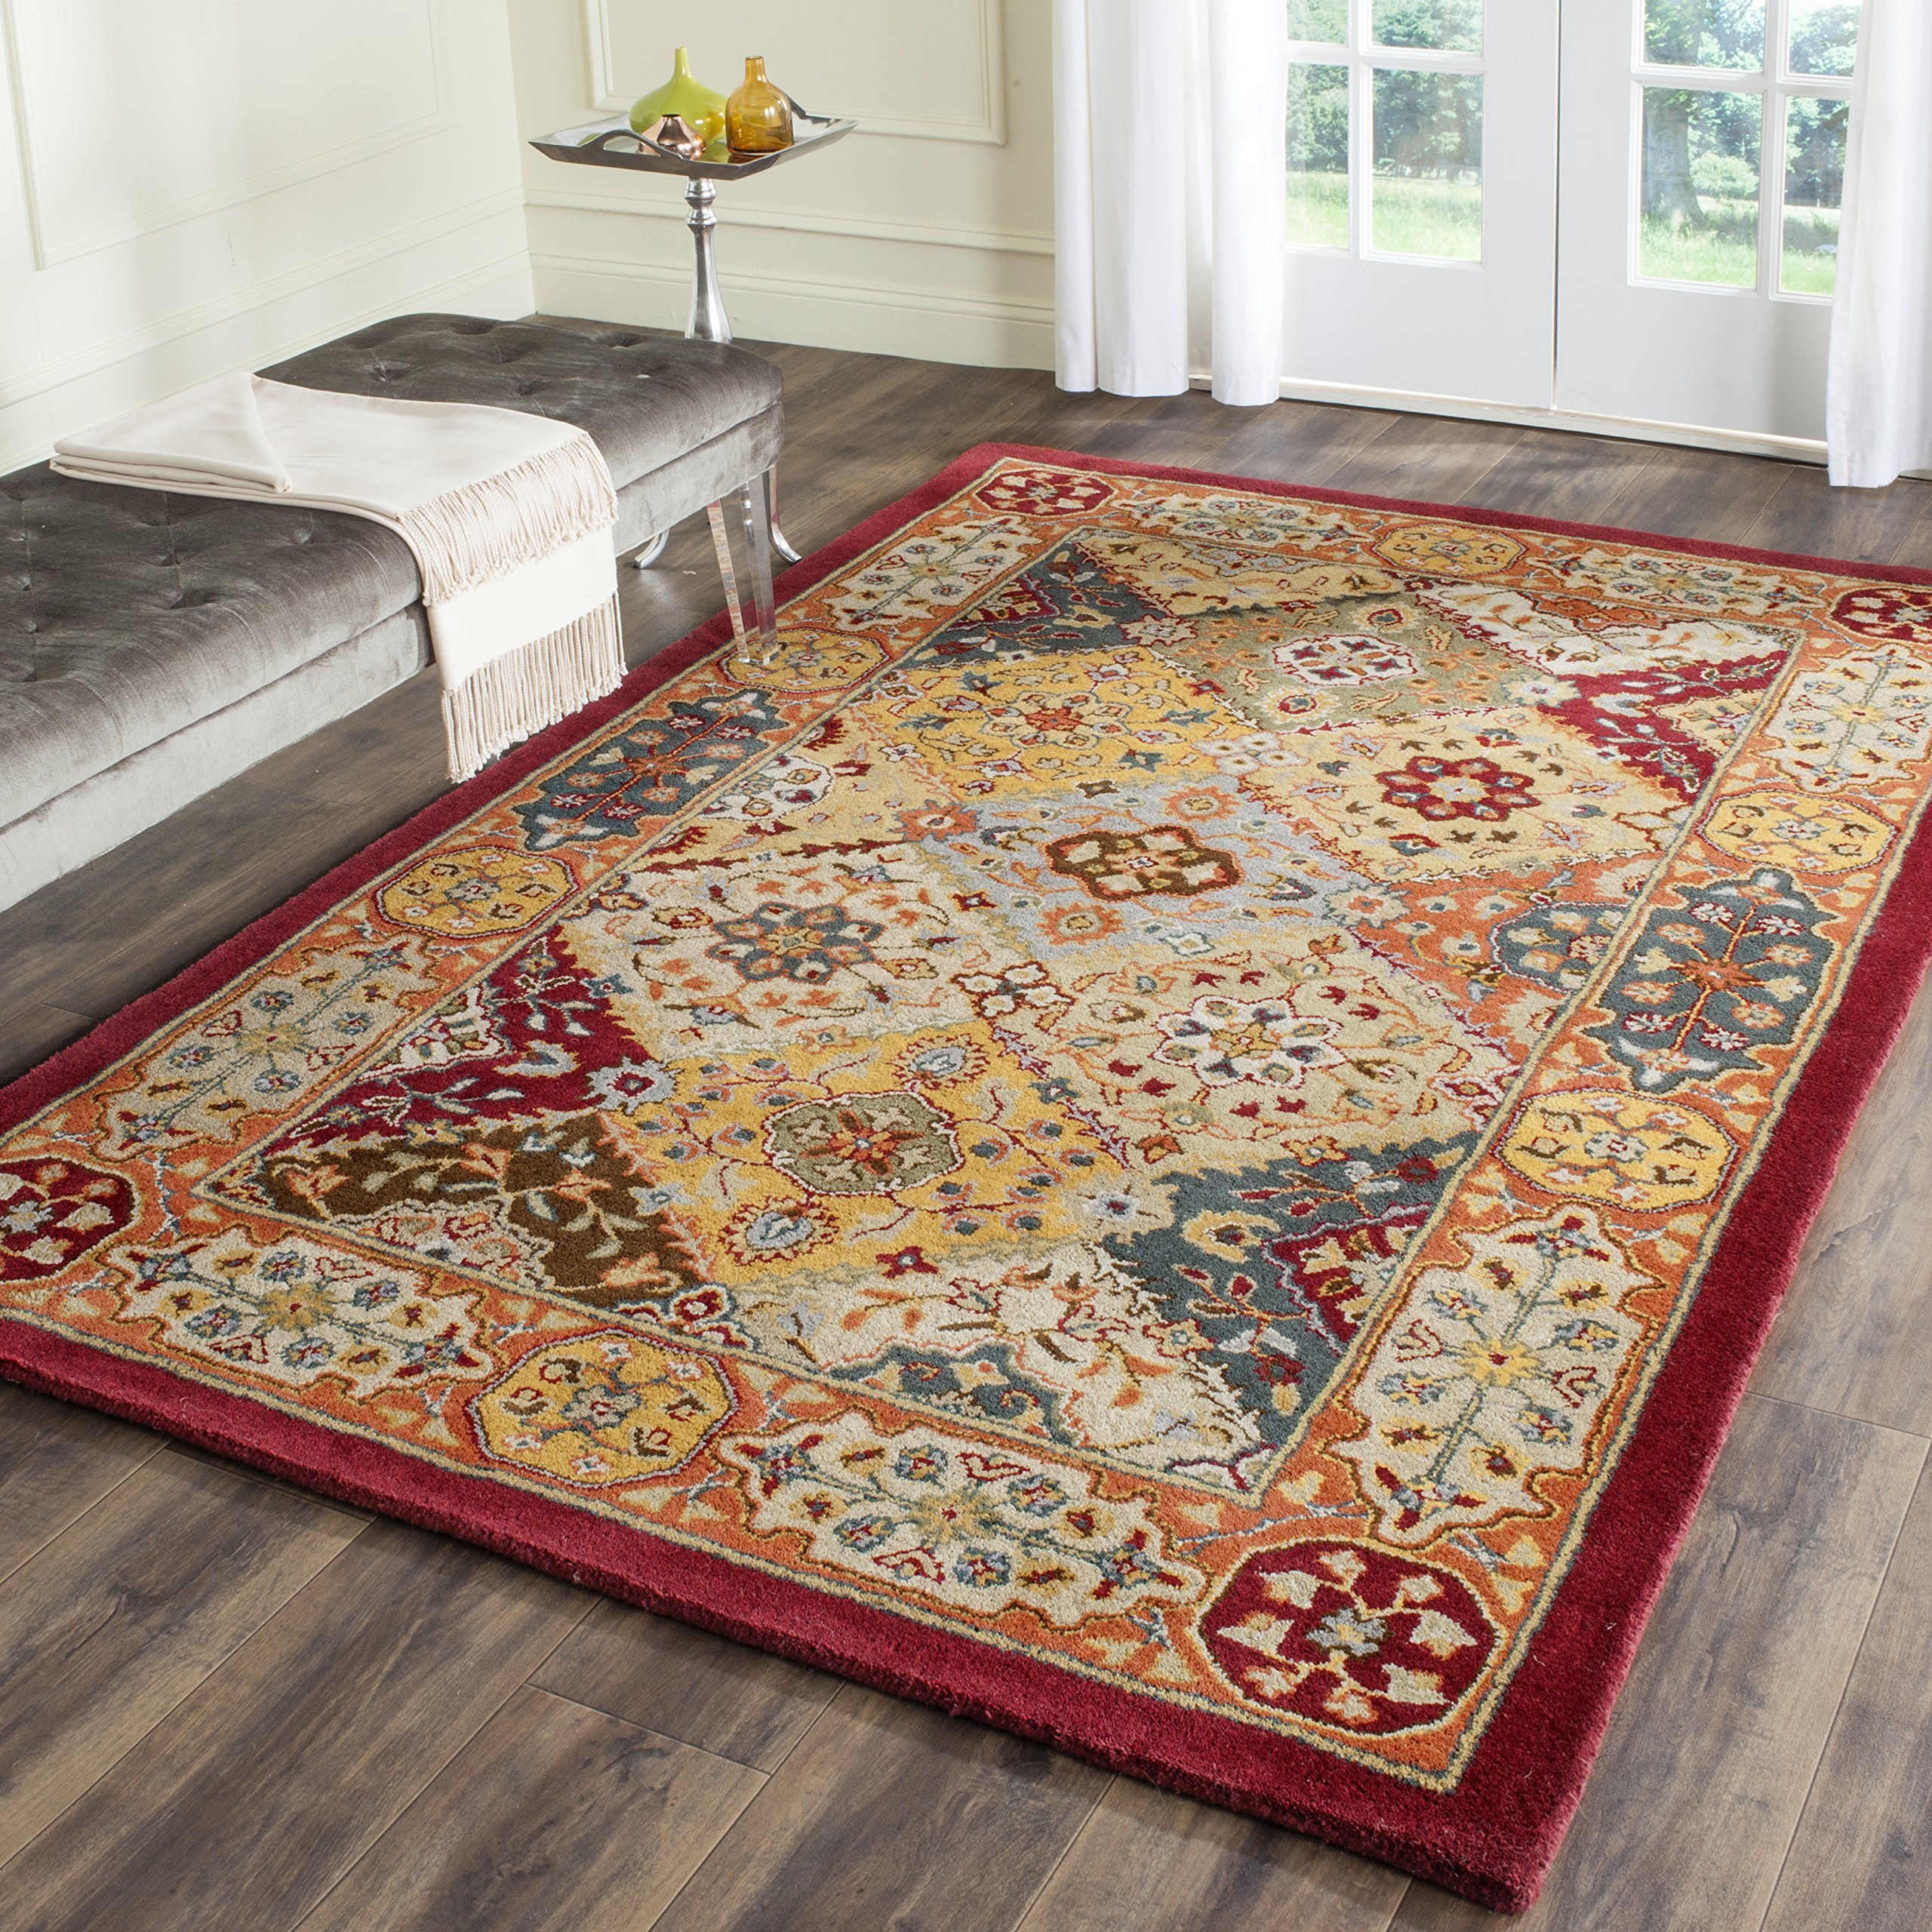 Safavieh Heritage Collection HG512A Handcrafted Traditional Oriental Multicolored Wool Area Rug (9' x 12')